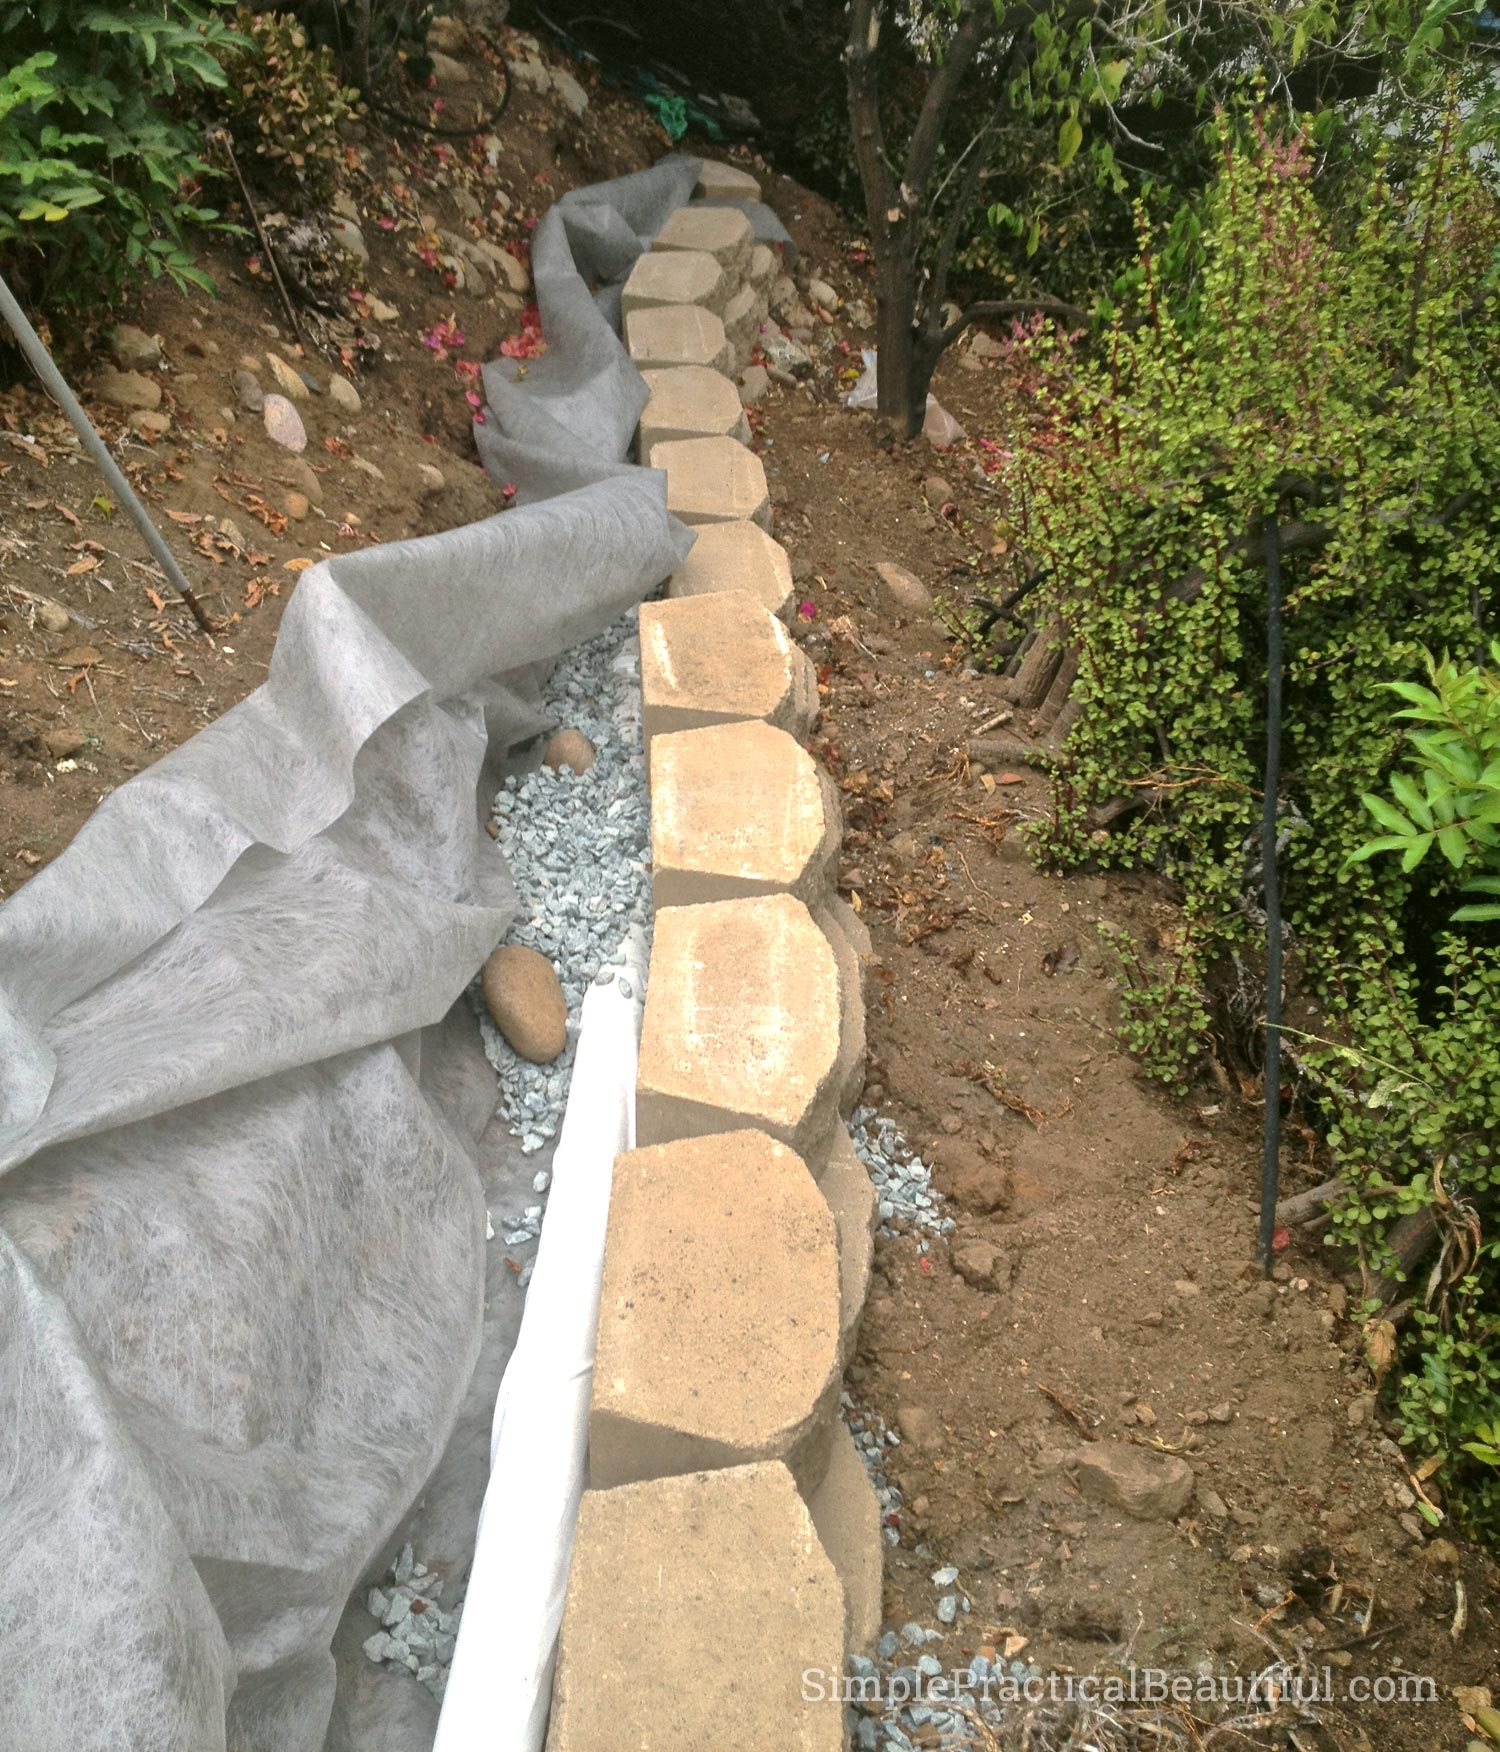 the french drain for the retaining wall